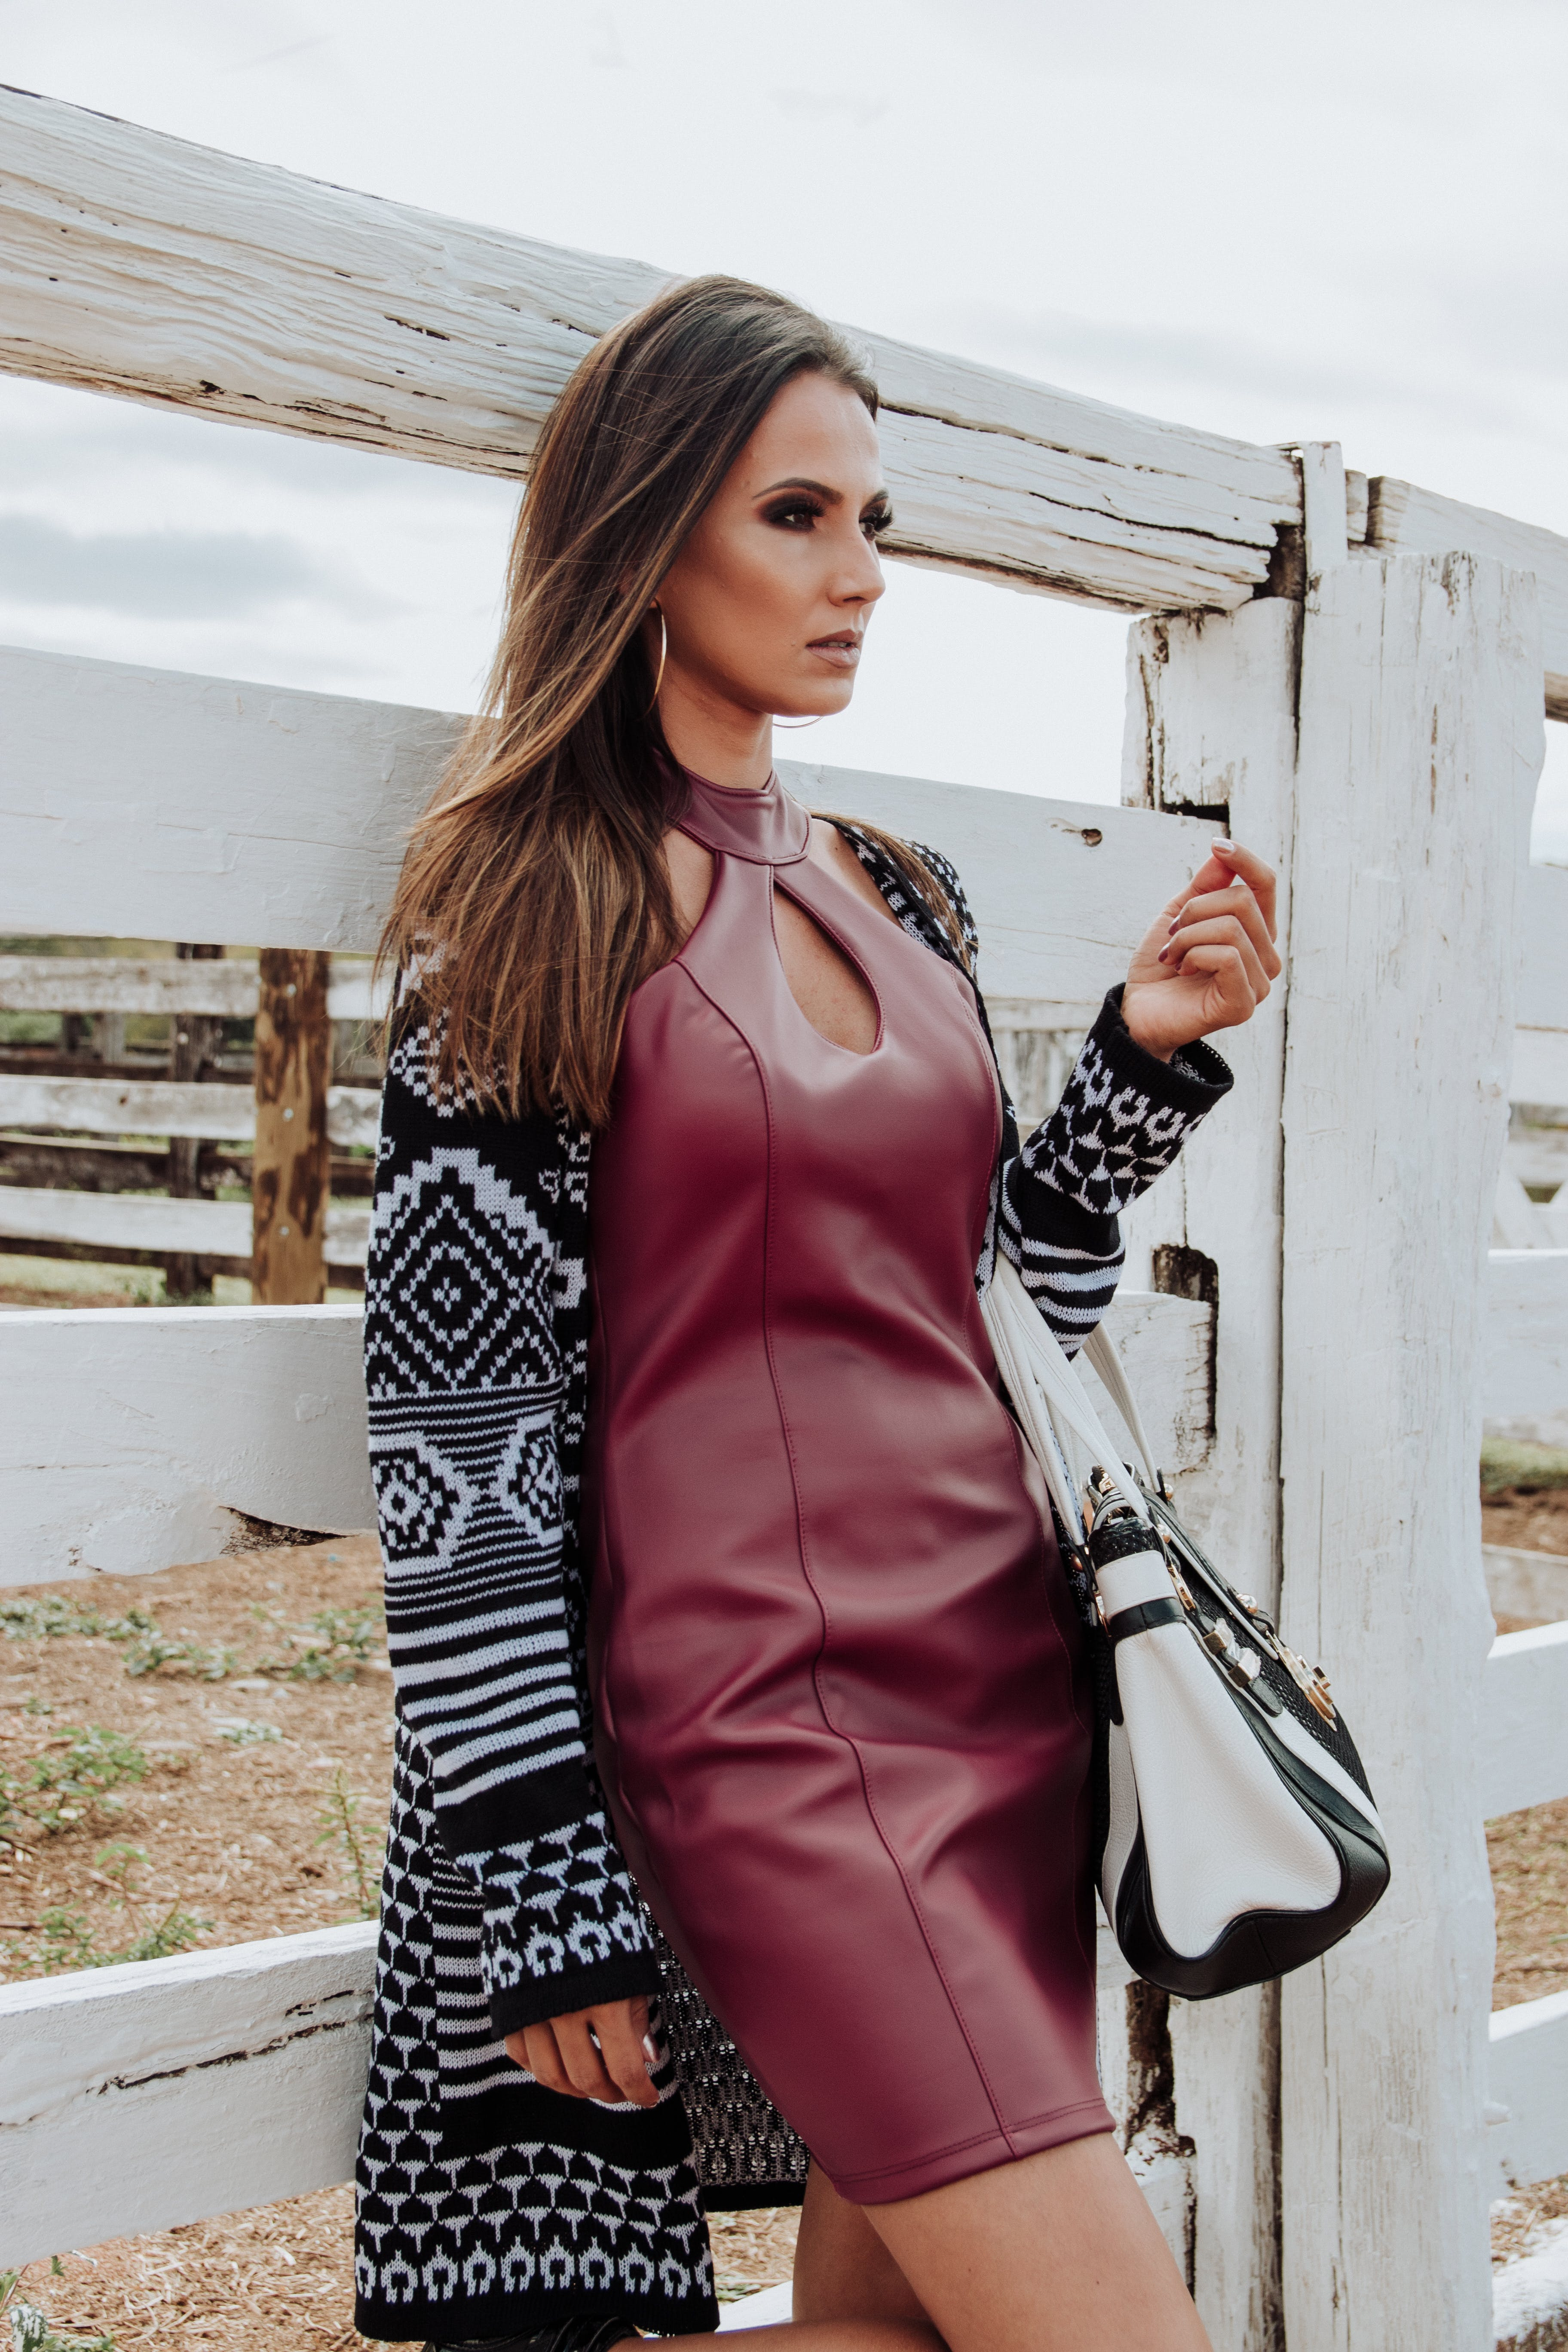 Woman Wearing Maroon Leather Dress and Cardigan Leaning on White Plank Wall